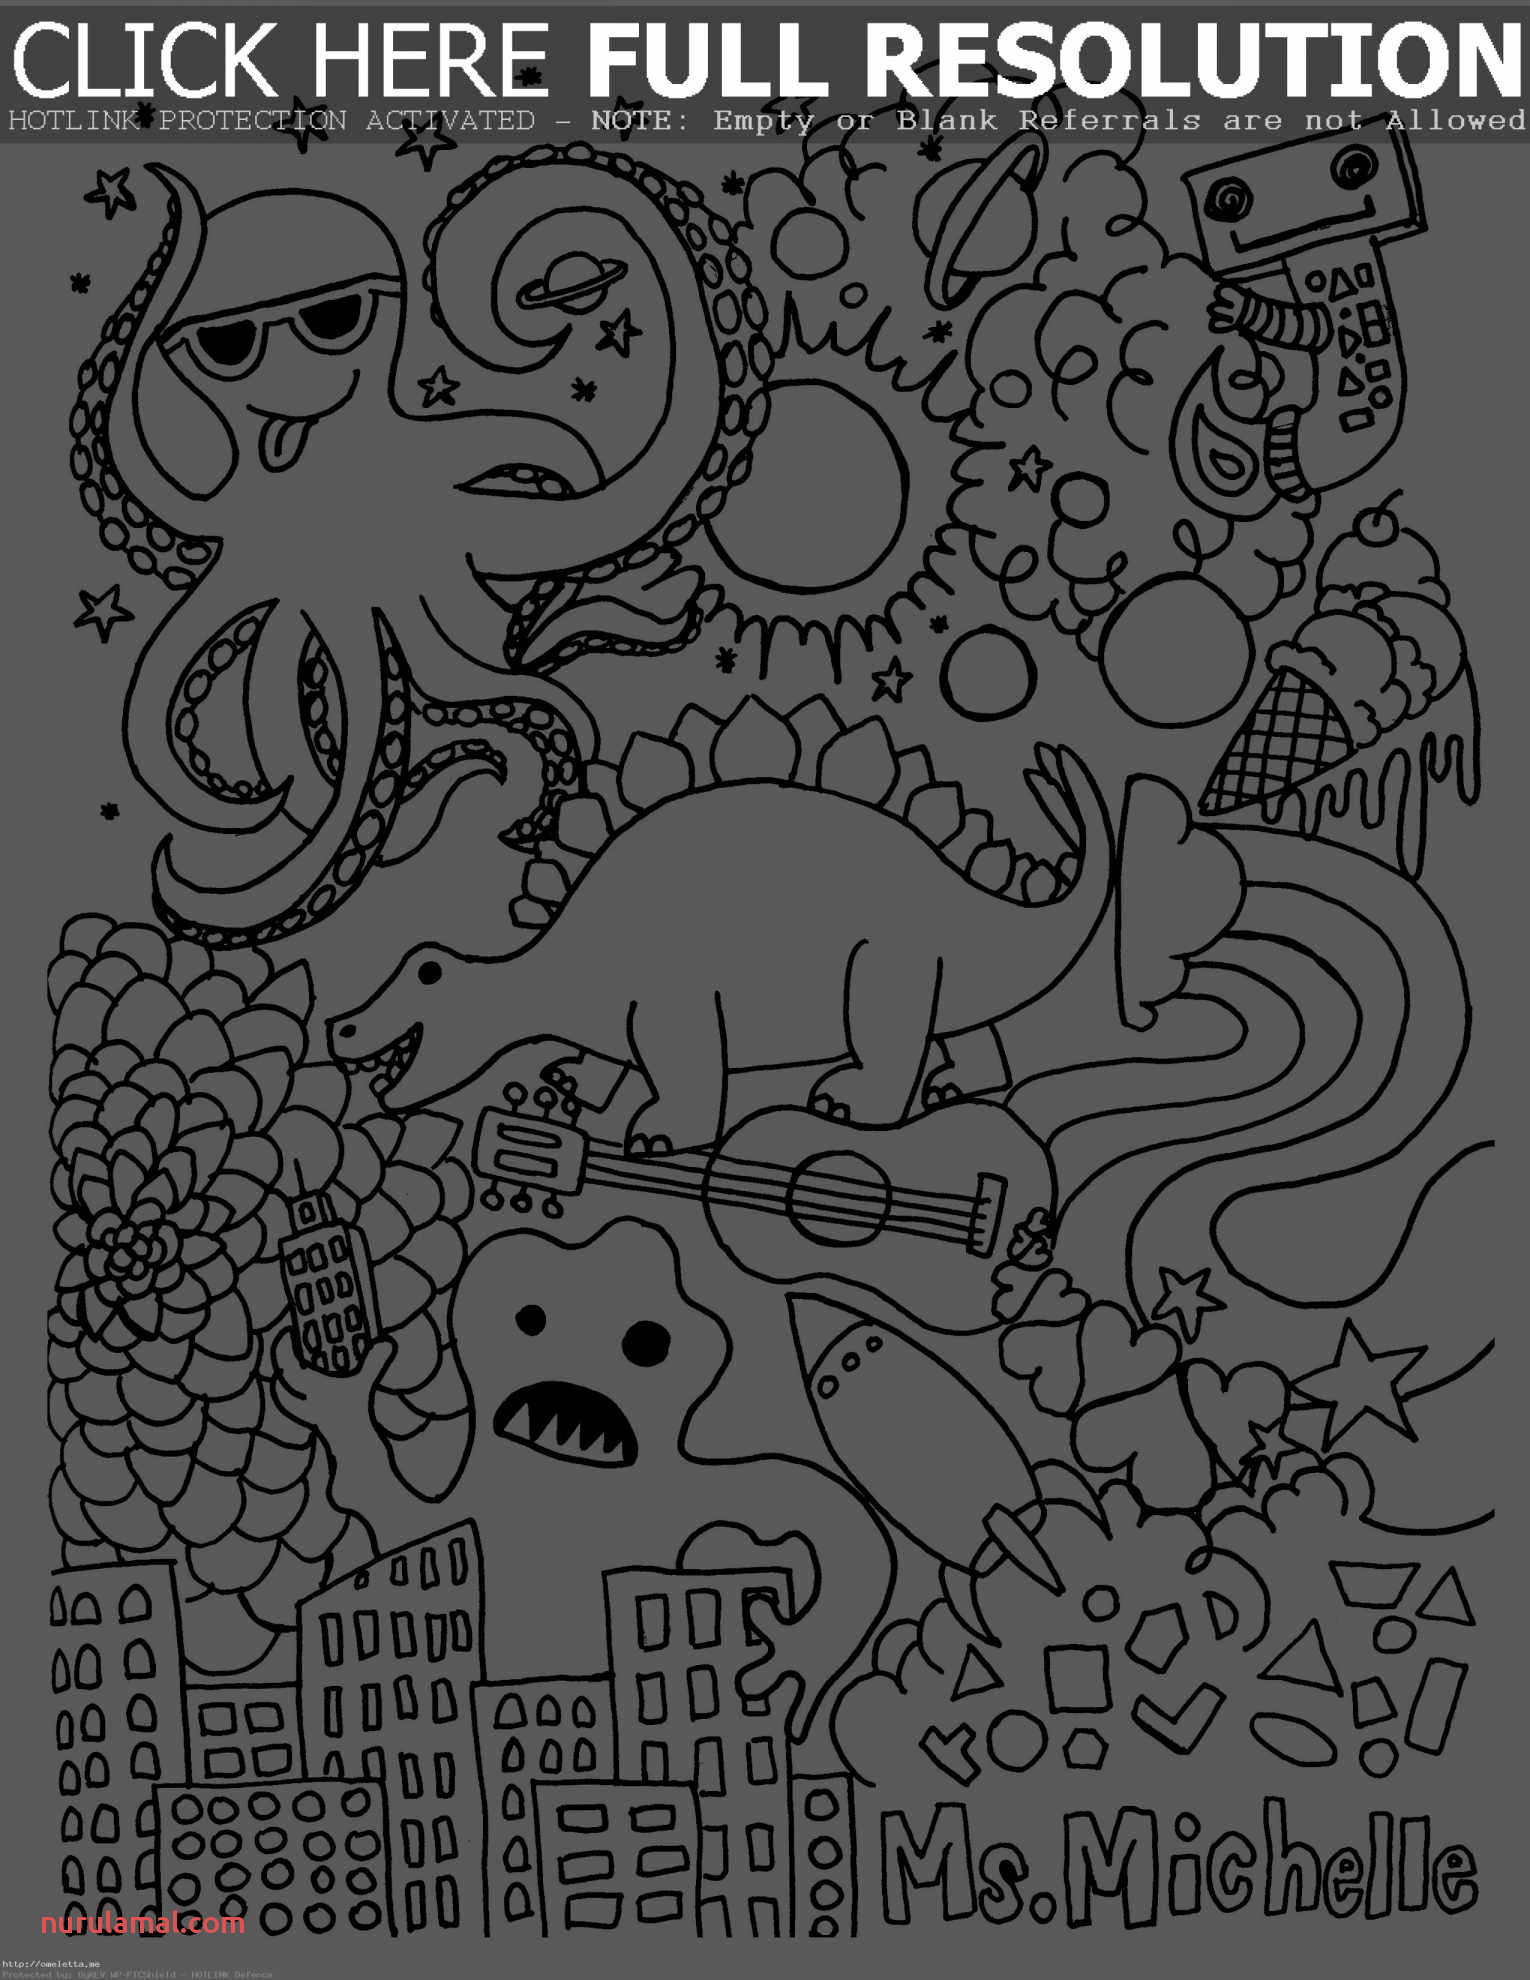 math coloring worksheets 4th grade beauty of horror letter pages doodle book zodiac for adults romantic country colouring sacred geometry barbie drawing printable birthday fox farting